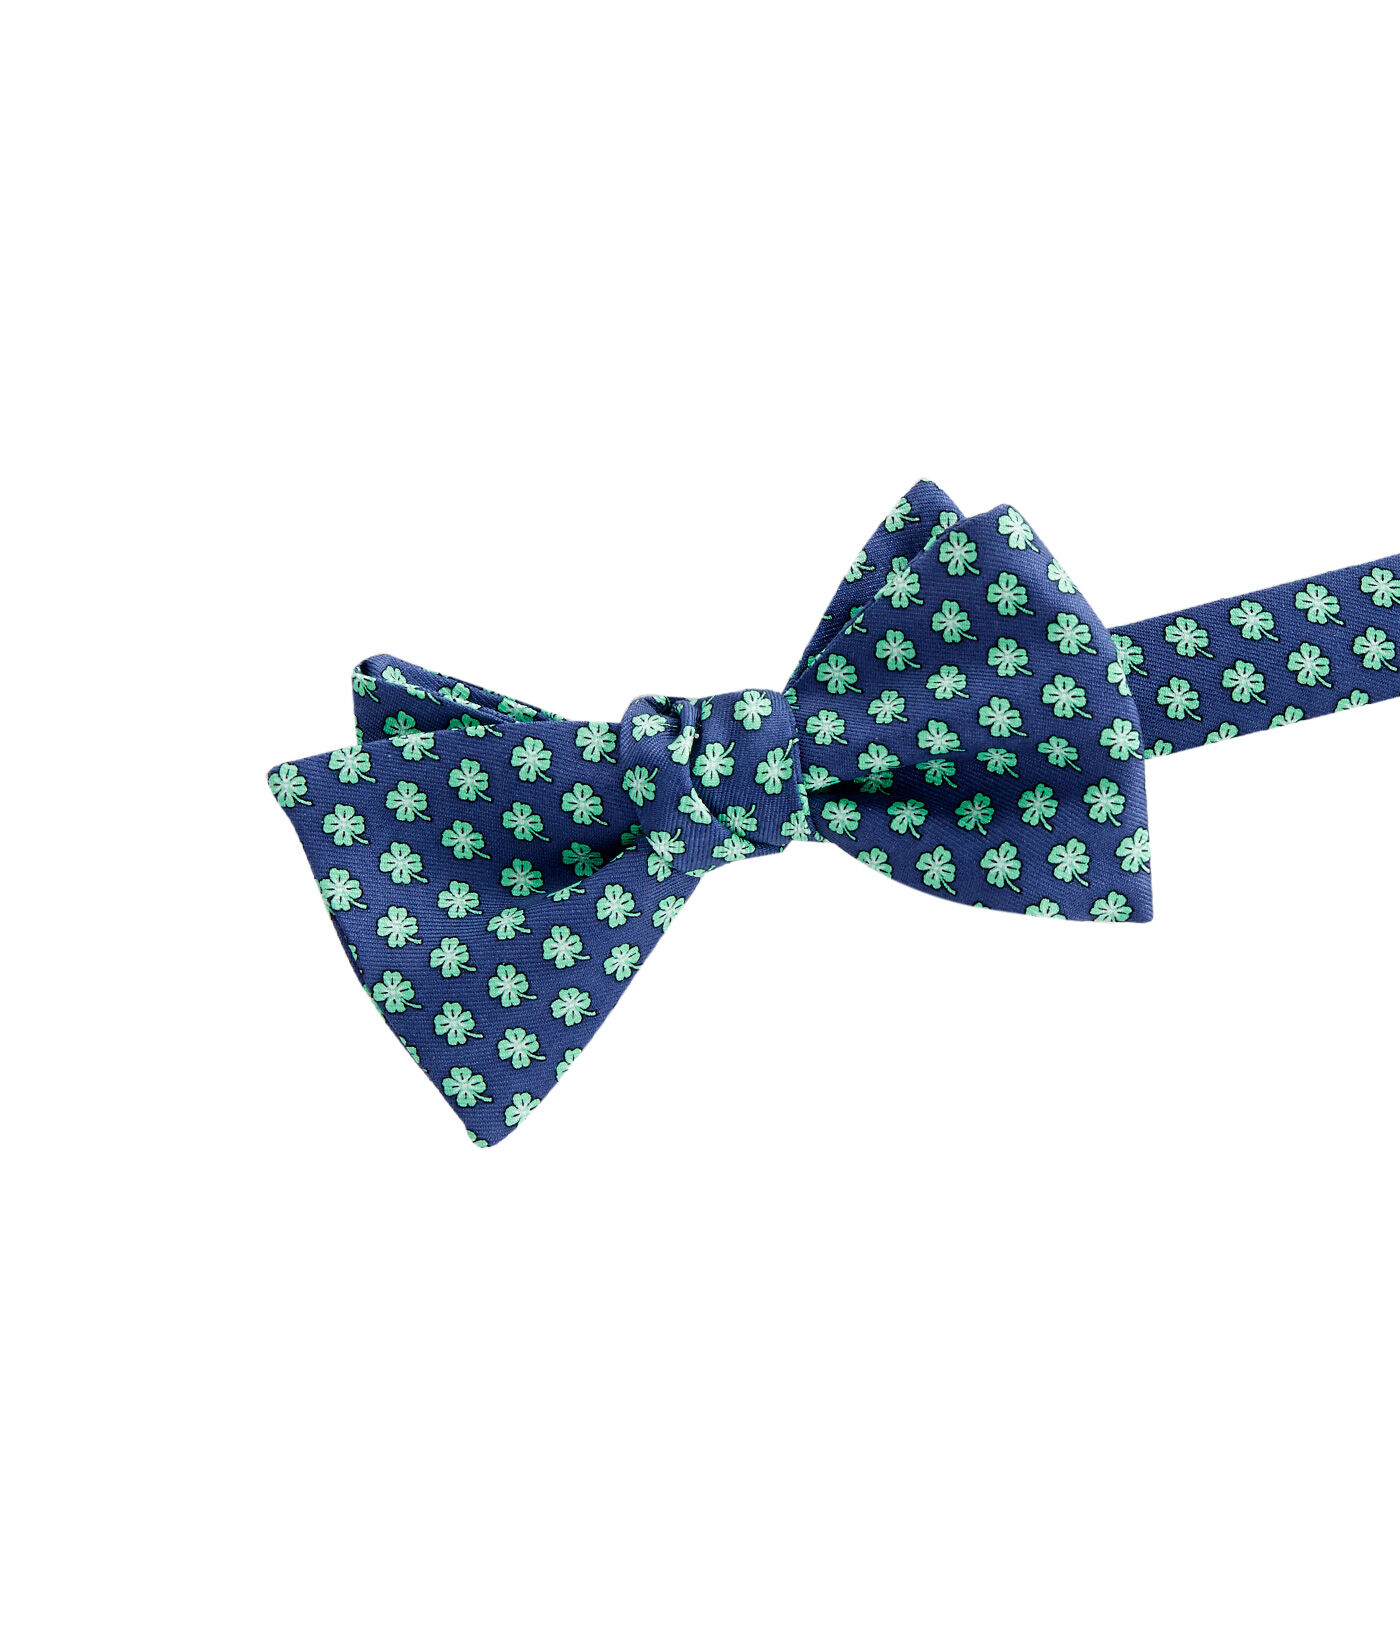 ACCESSORIES - Bow Ties Nick & Sons 4nGEFo